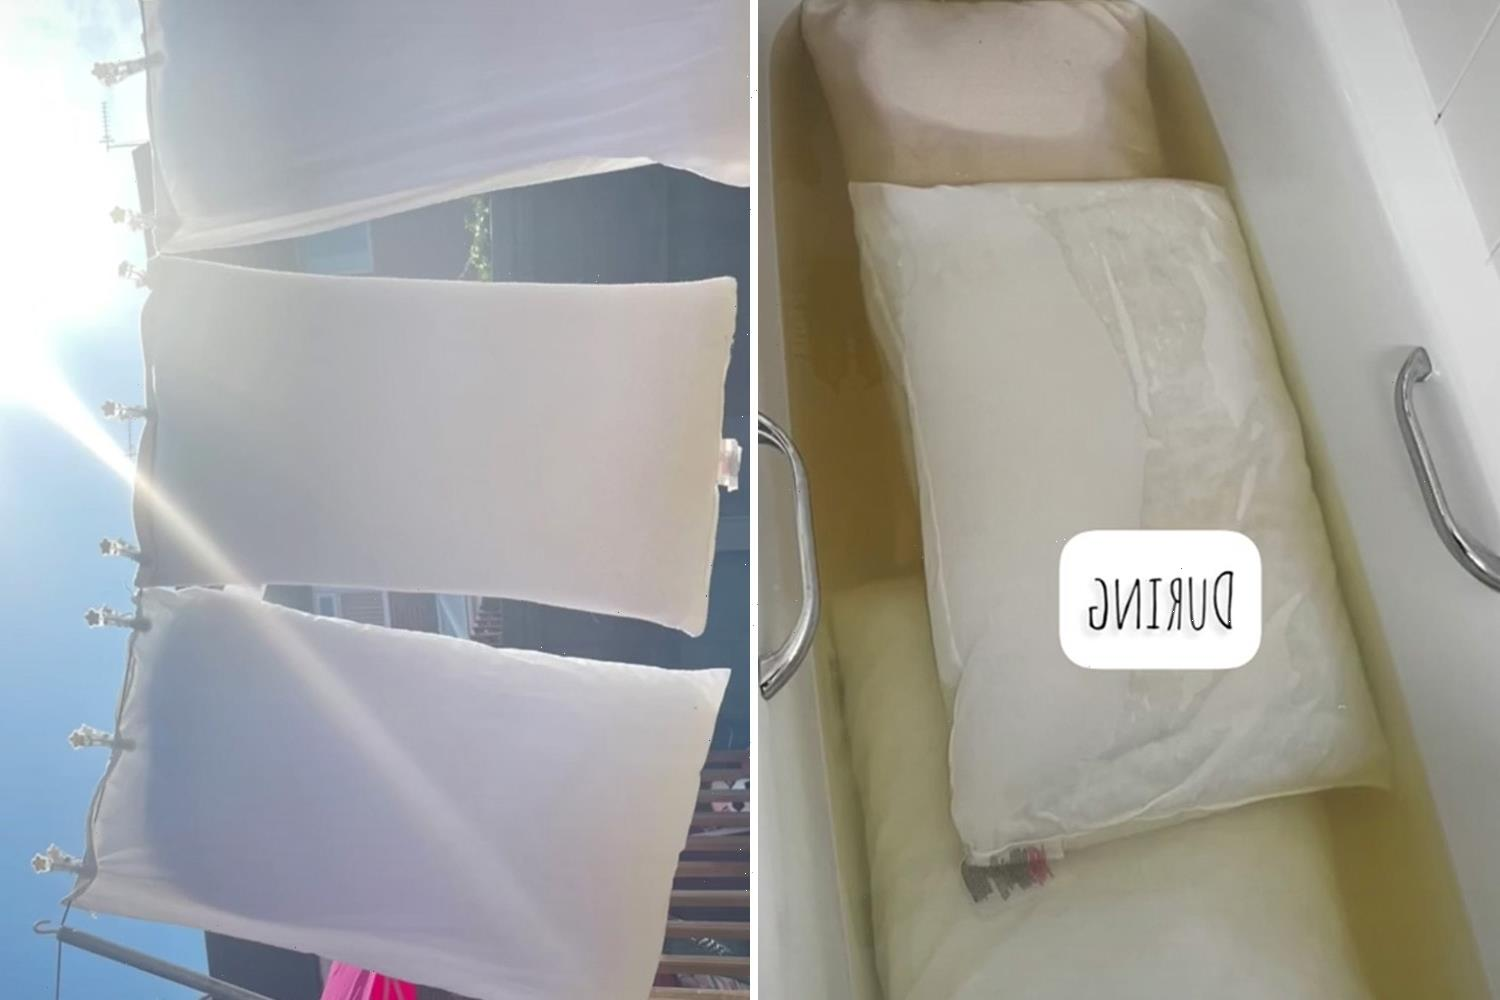 I cleaned my husband's sweatstained pillows for the first time, I had to let them soak for TWO hours